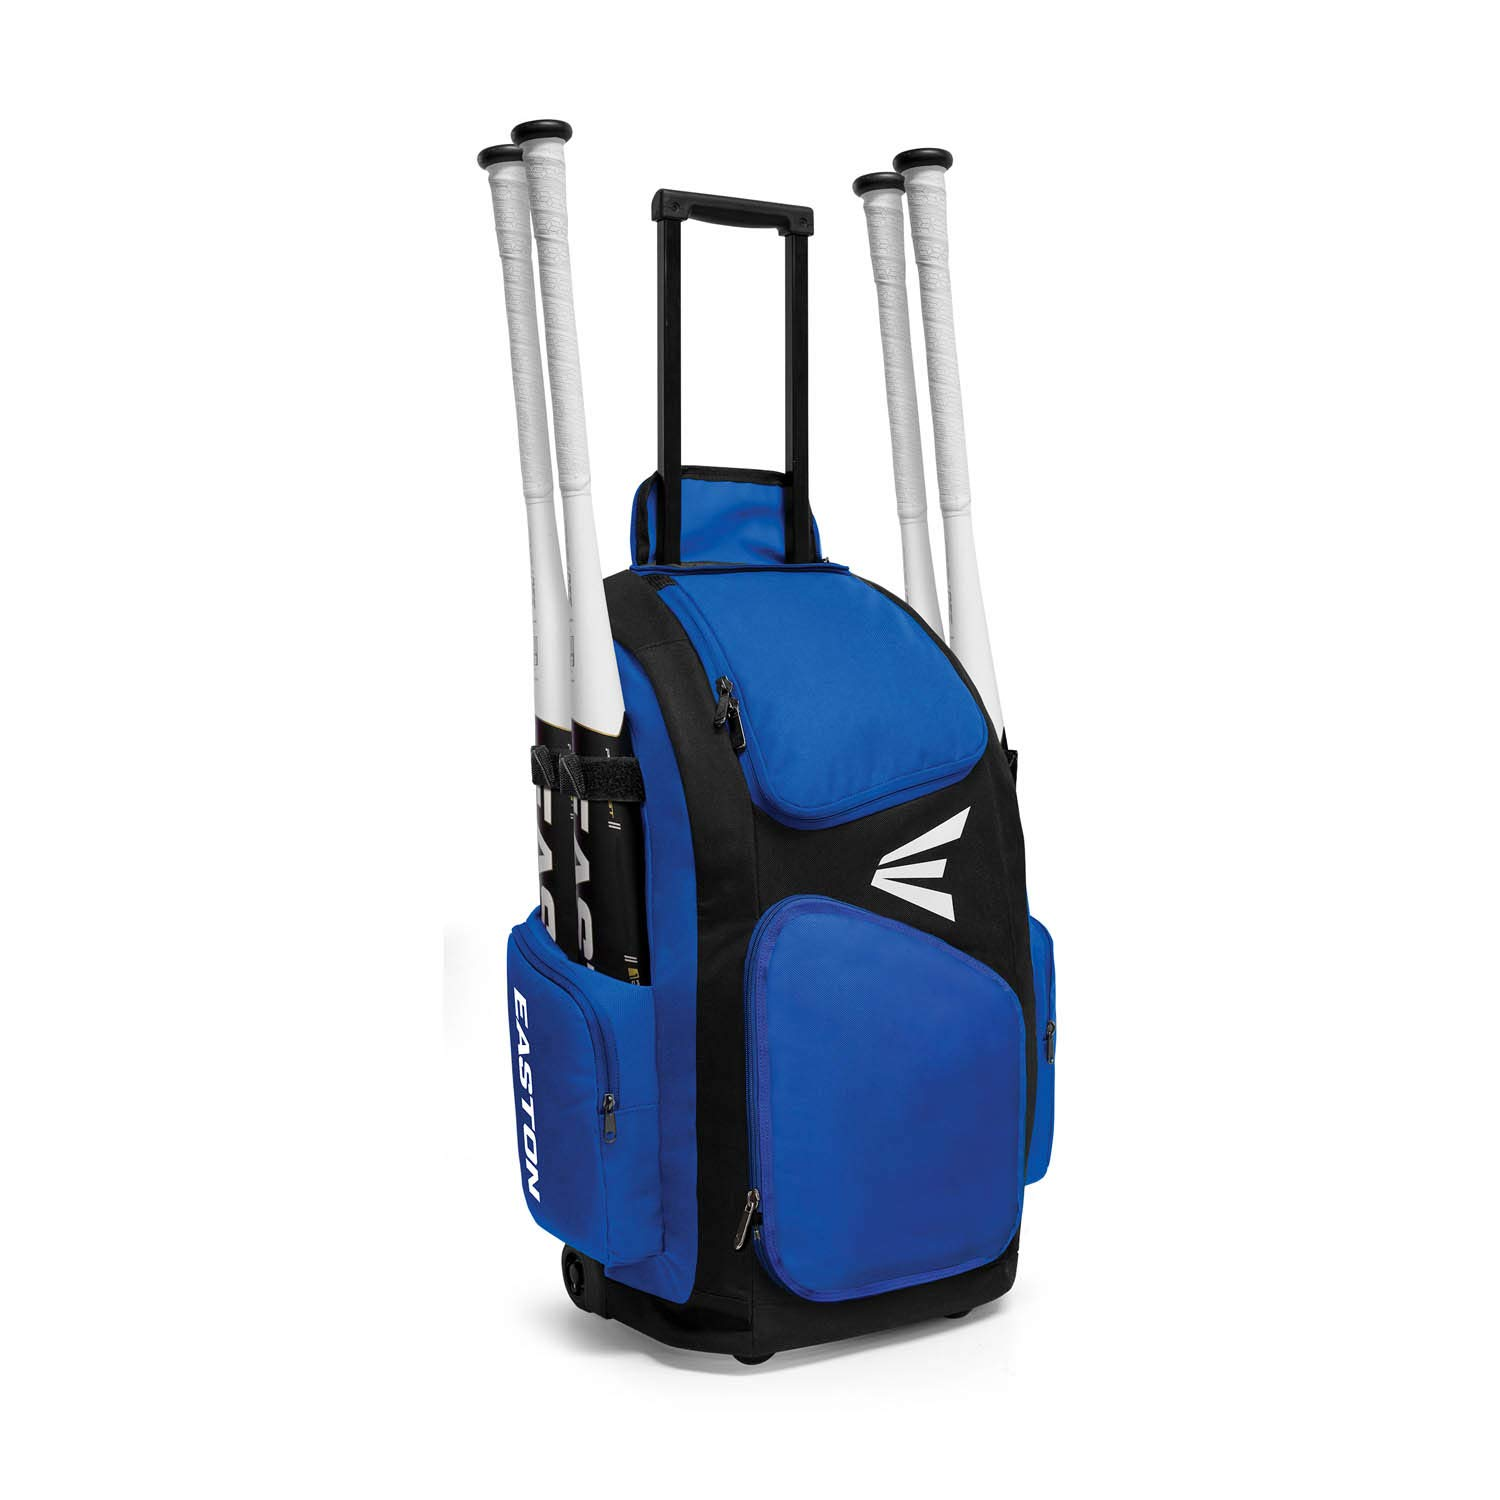 EASTON TRAVELER Bat & Equipment Wheeled Bag | Baseball Softball | 2019 | Royal | 4 Bat Sleeves | Vented Gear & Shoe Compartments | 2 Side Zippered Pockets | Telescope Handle | Stands Up | Fence Hook by Easton (Image #1)